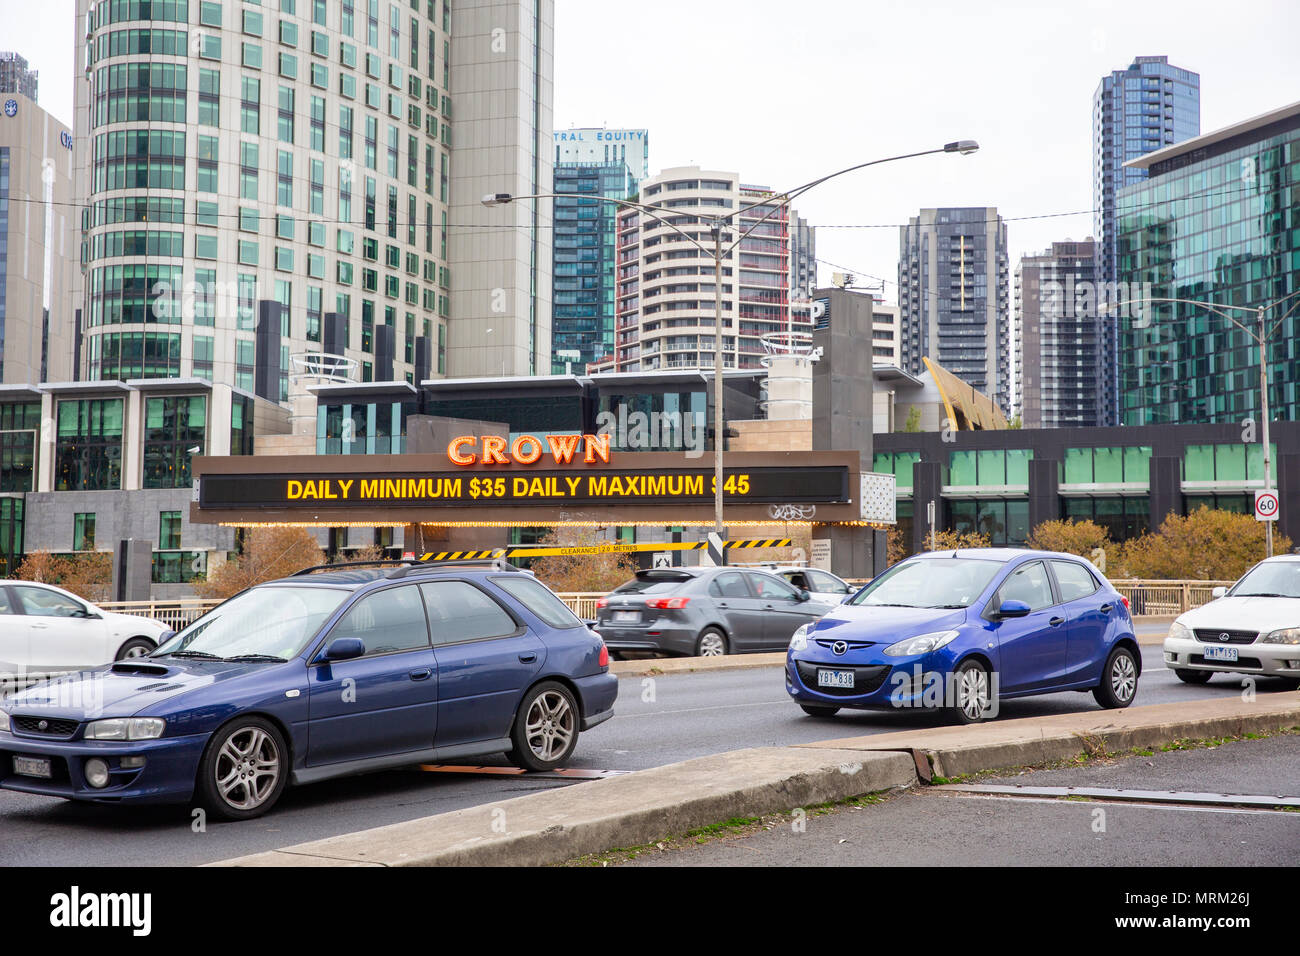 Parking crown casino melbourne lakeside resort and casino